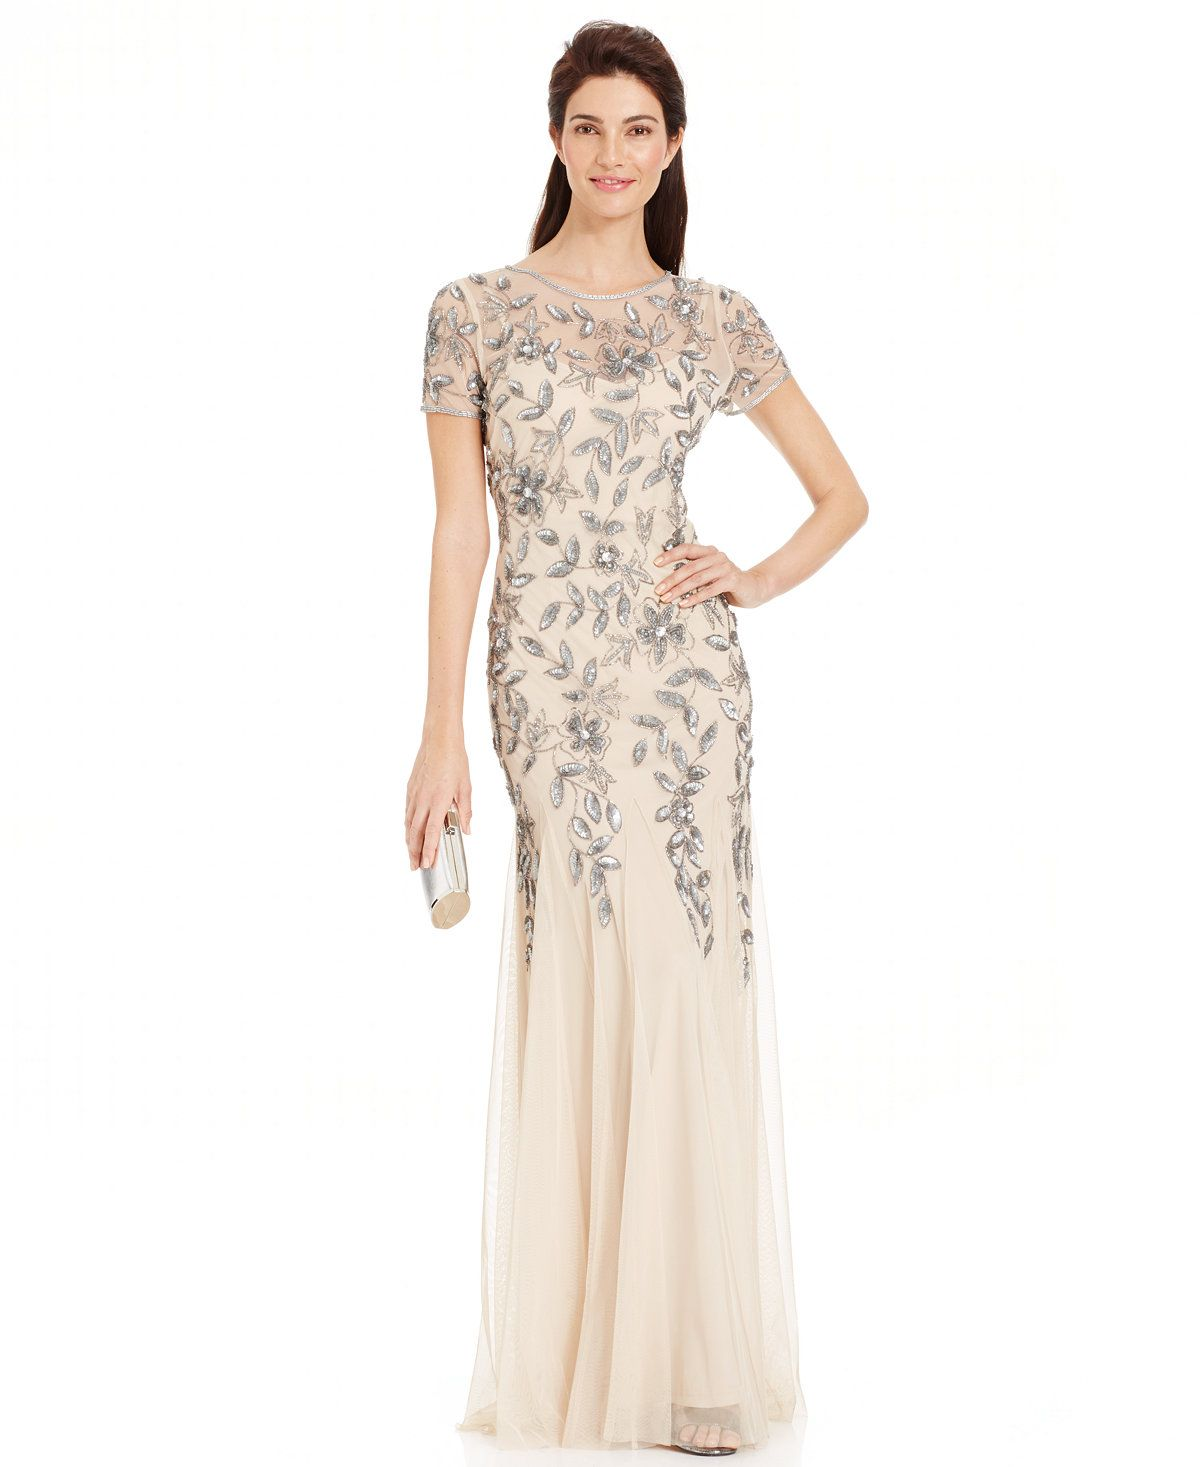 c5c924ba04 Adrianna Papell Floral-Beaded Mermaid Gown - Guest of Wedding - Women -  Macy s